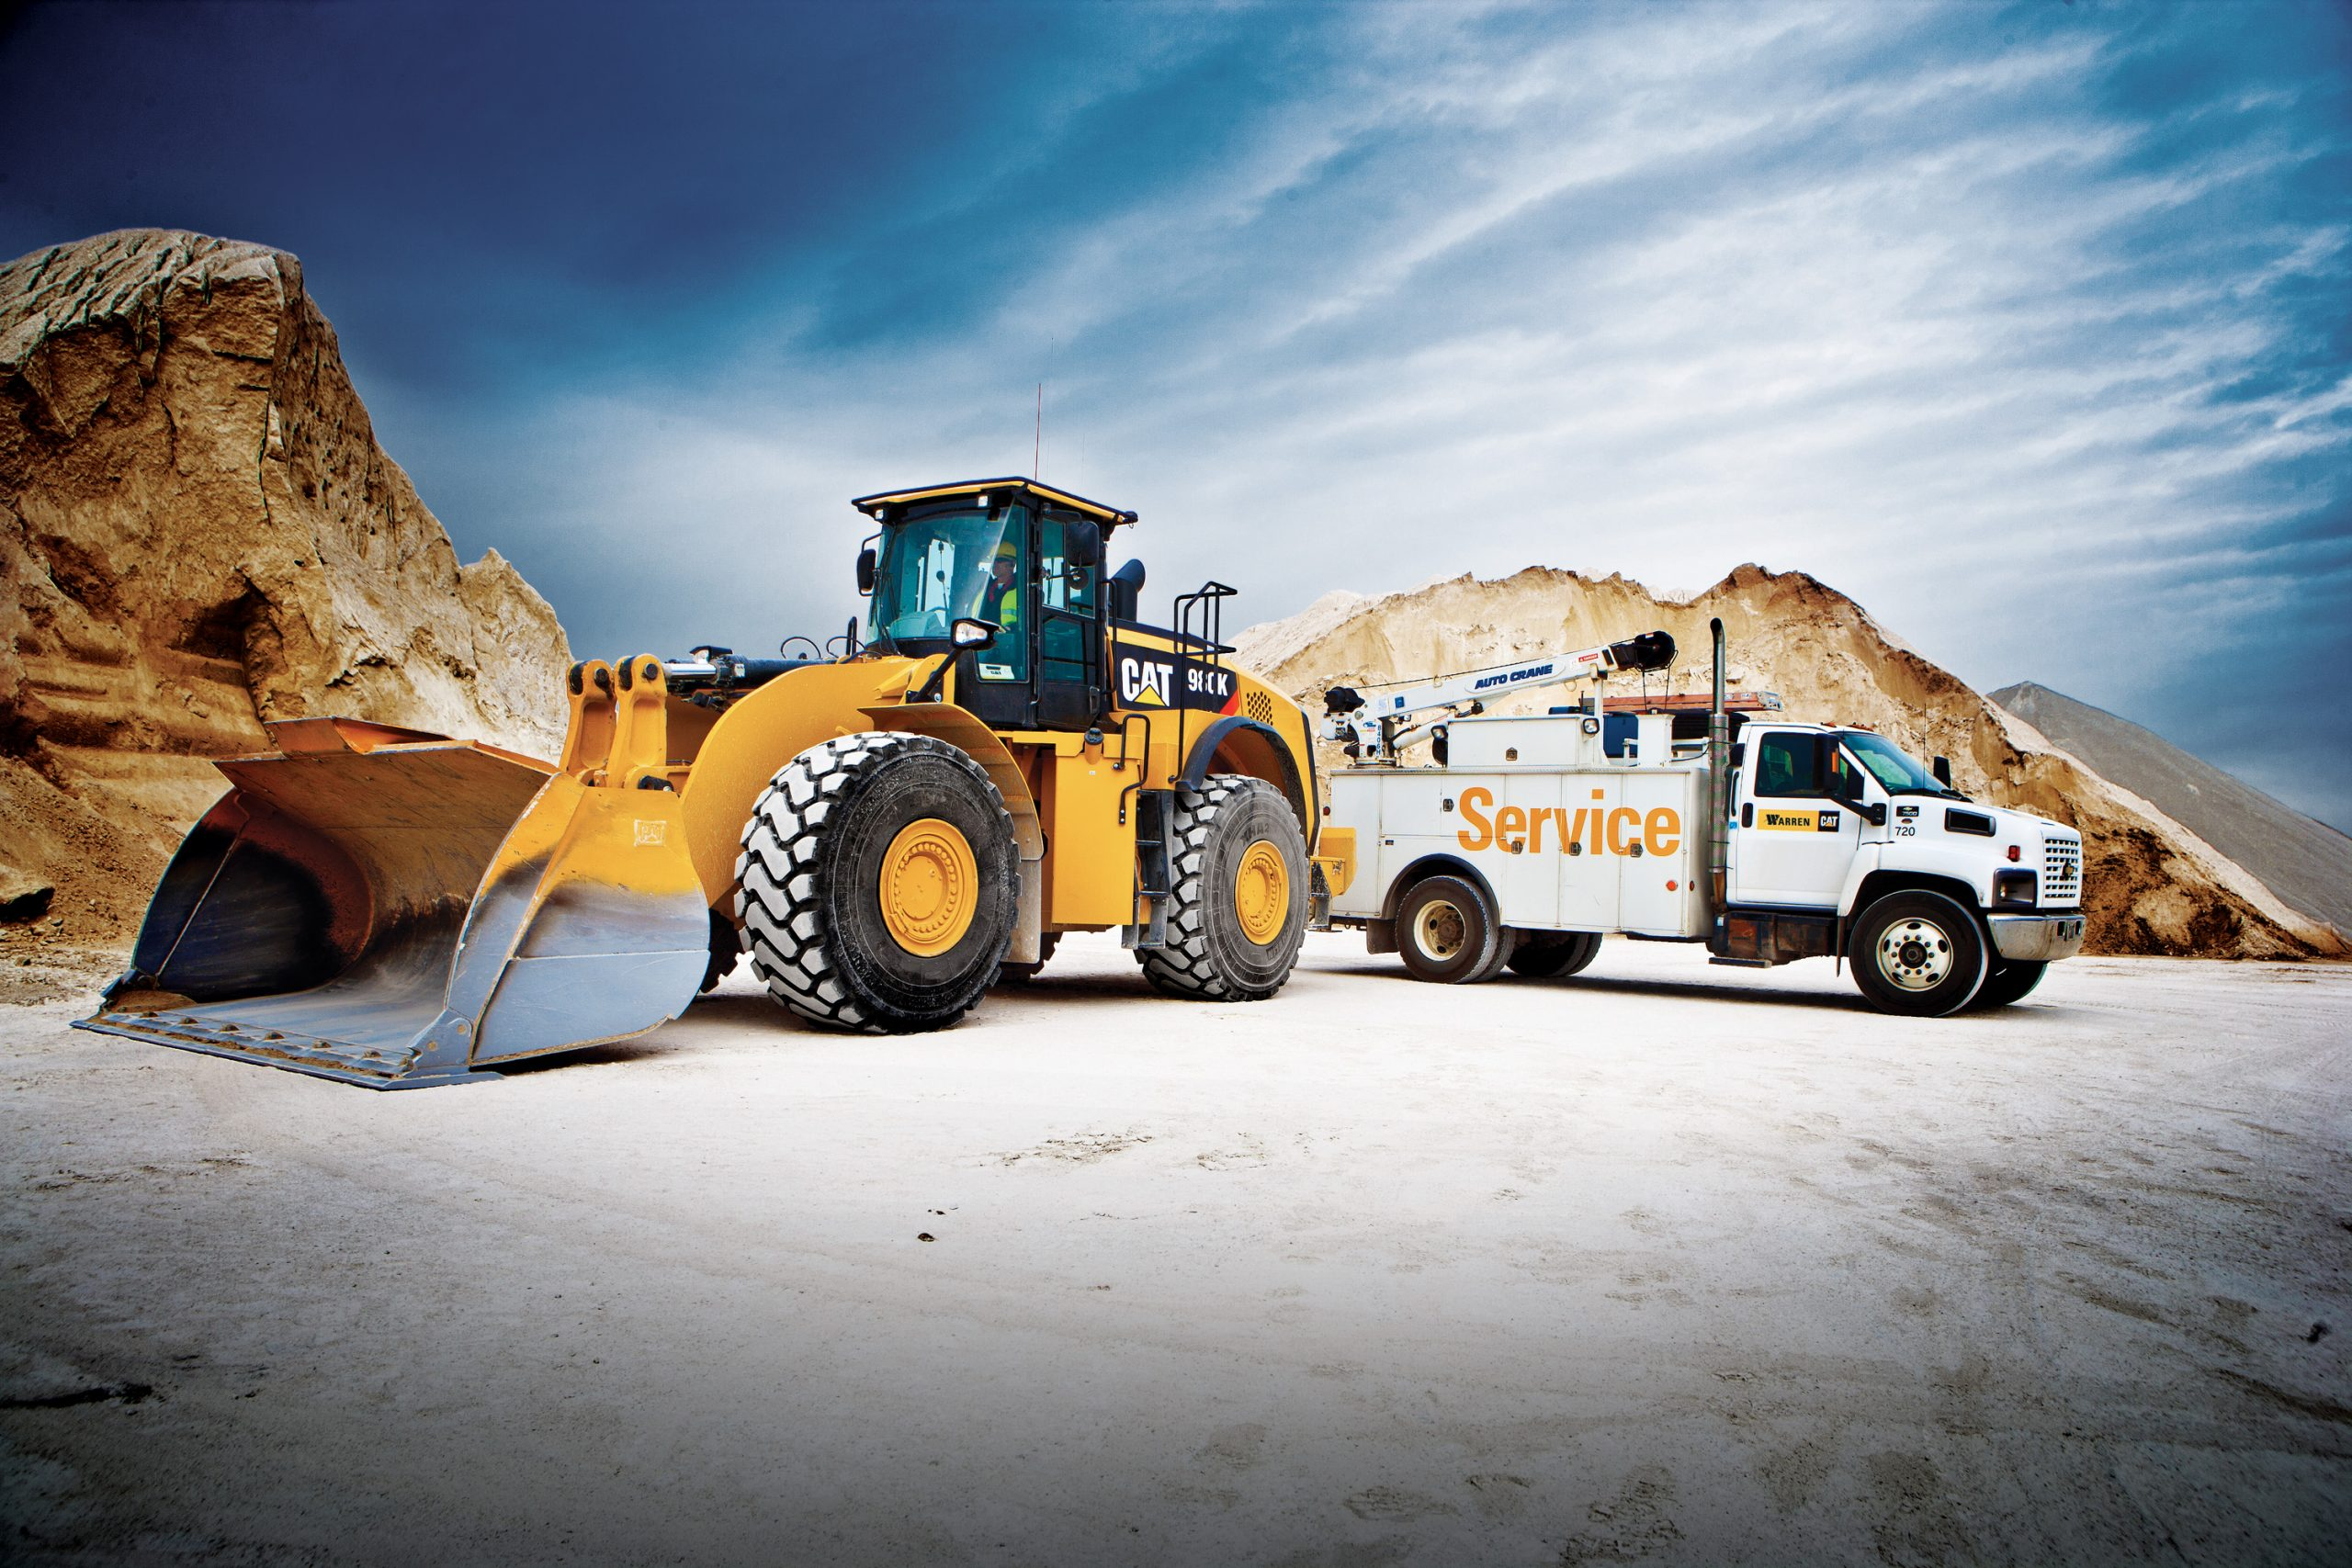 Construction equipment repair services from NMC Cat